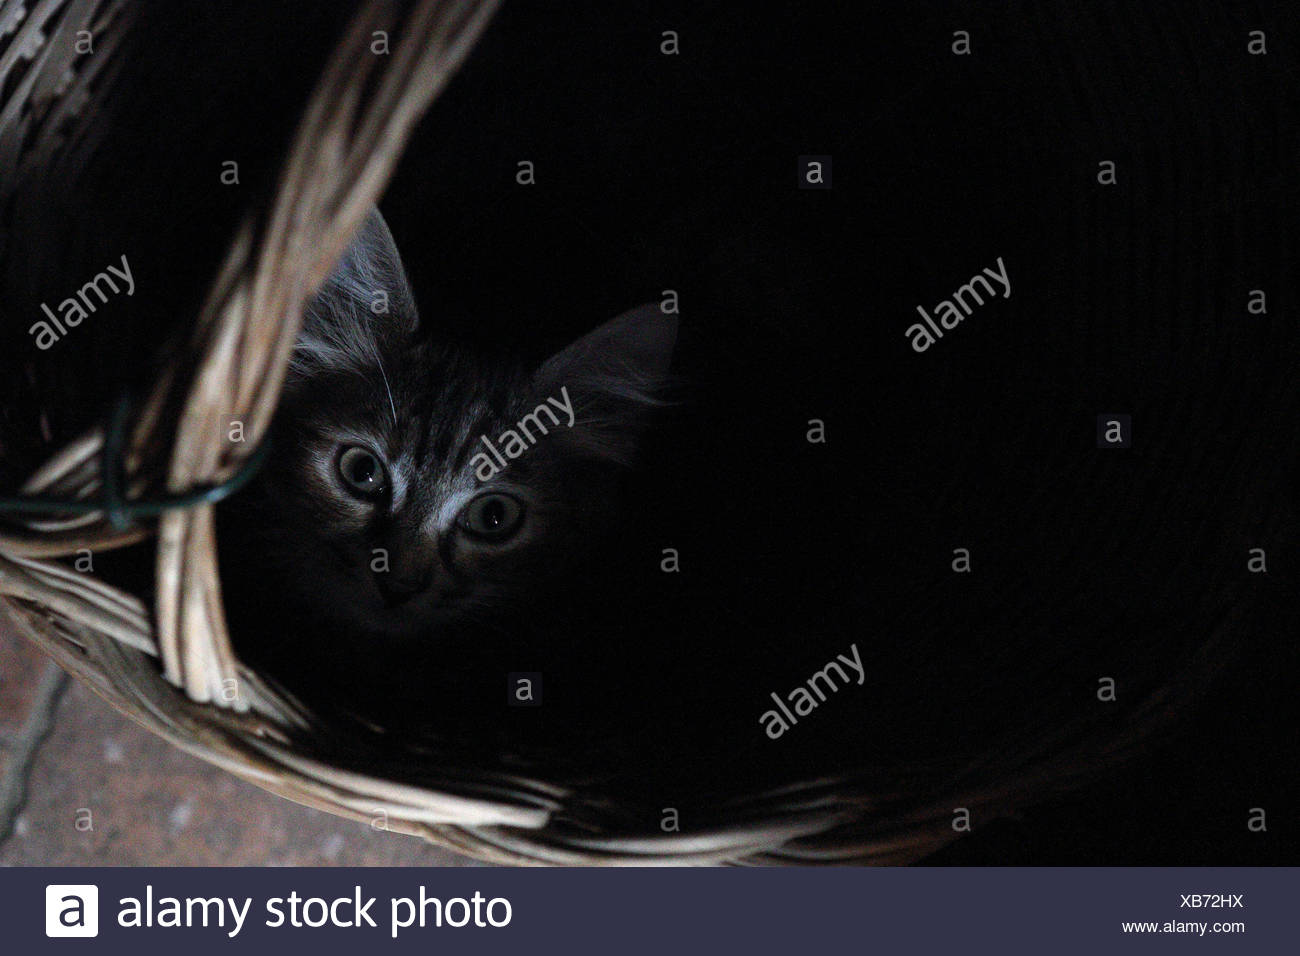 Acquapendente, Italy, cat sitting scared in a bast basket - Stock Image